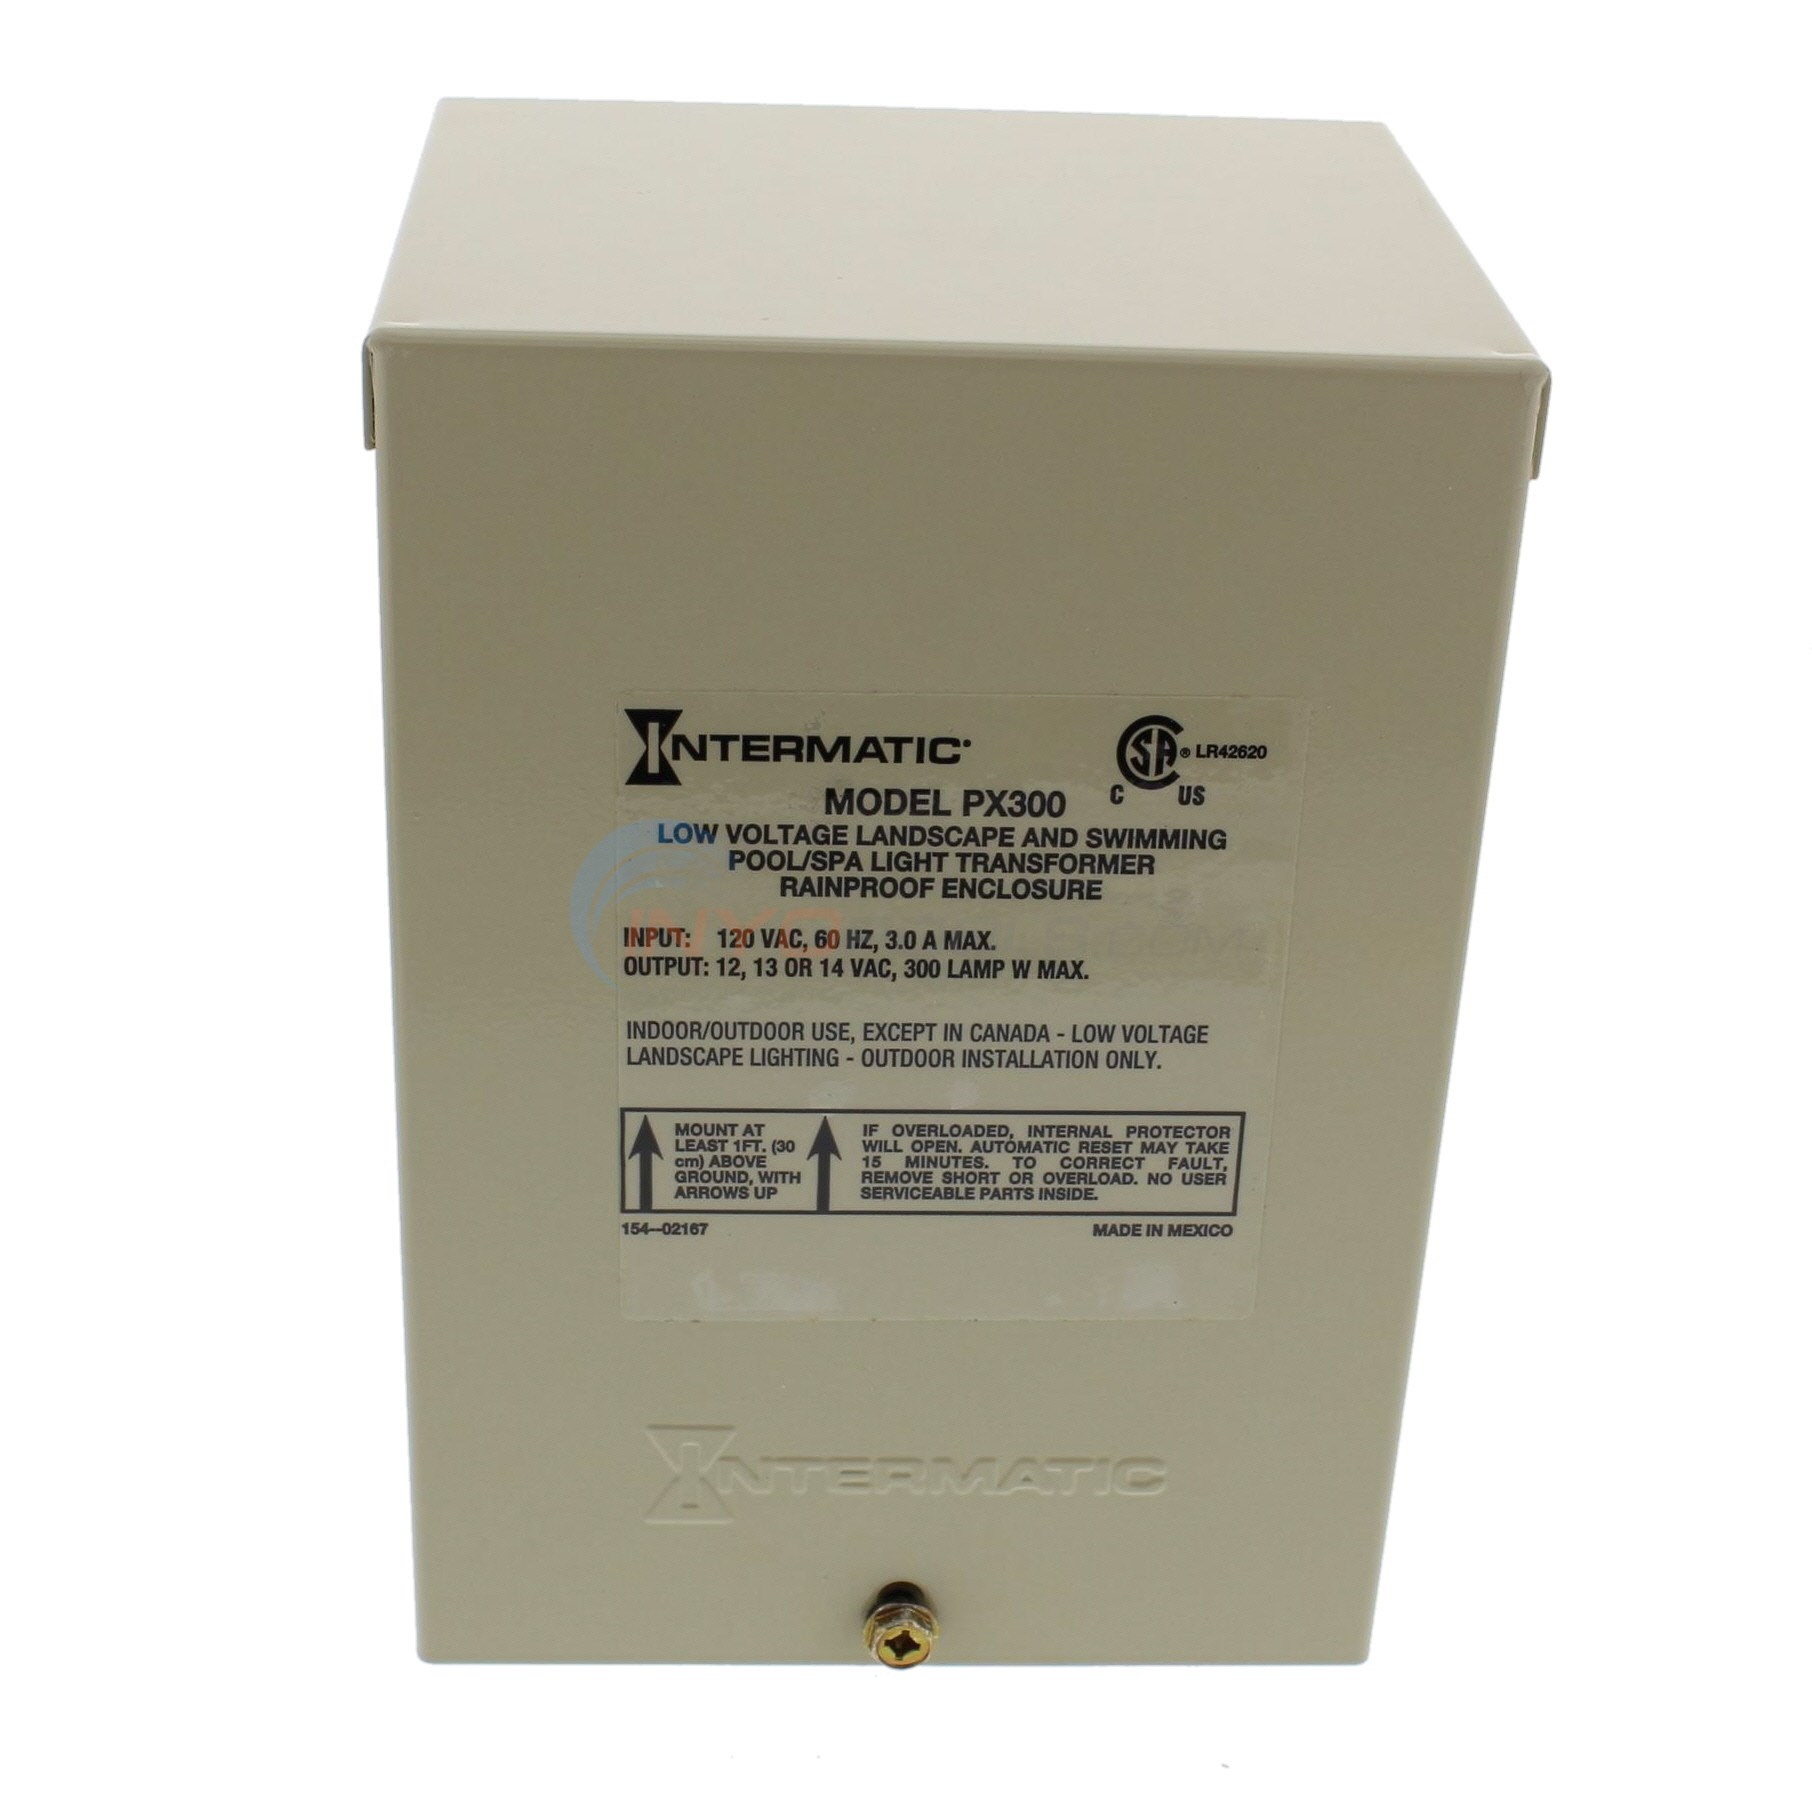 px30006?format=jpg&scale=both&anchor=middlecenter&autorotate=true&mode=pad&width=650&height=650 intermatic 300 watt transformer px300 inyopools com intermatic px300 wiring diagram at love-stories.co